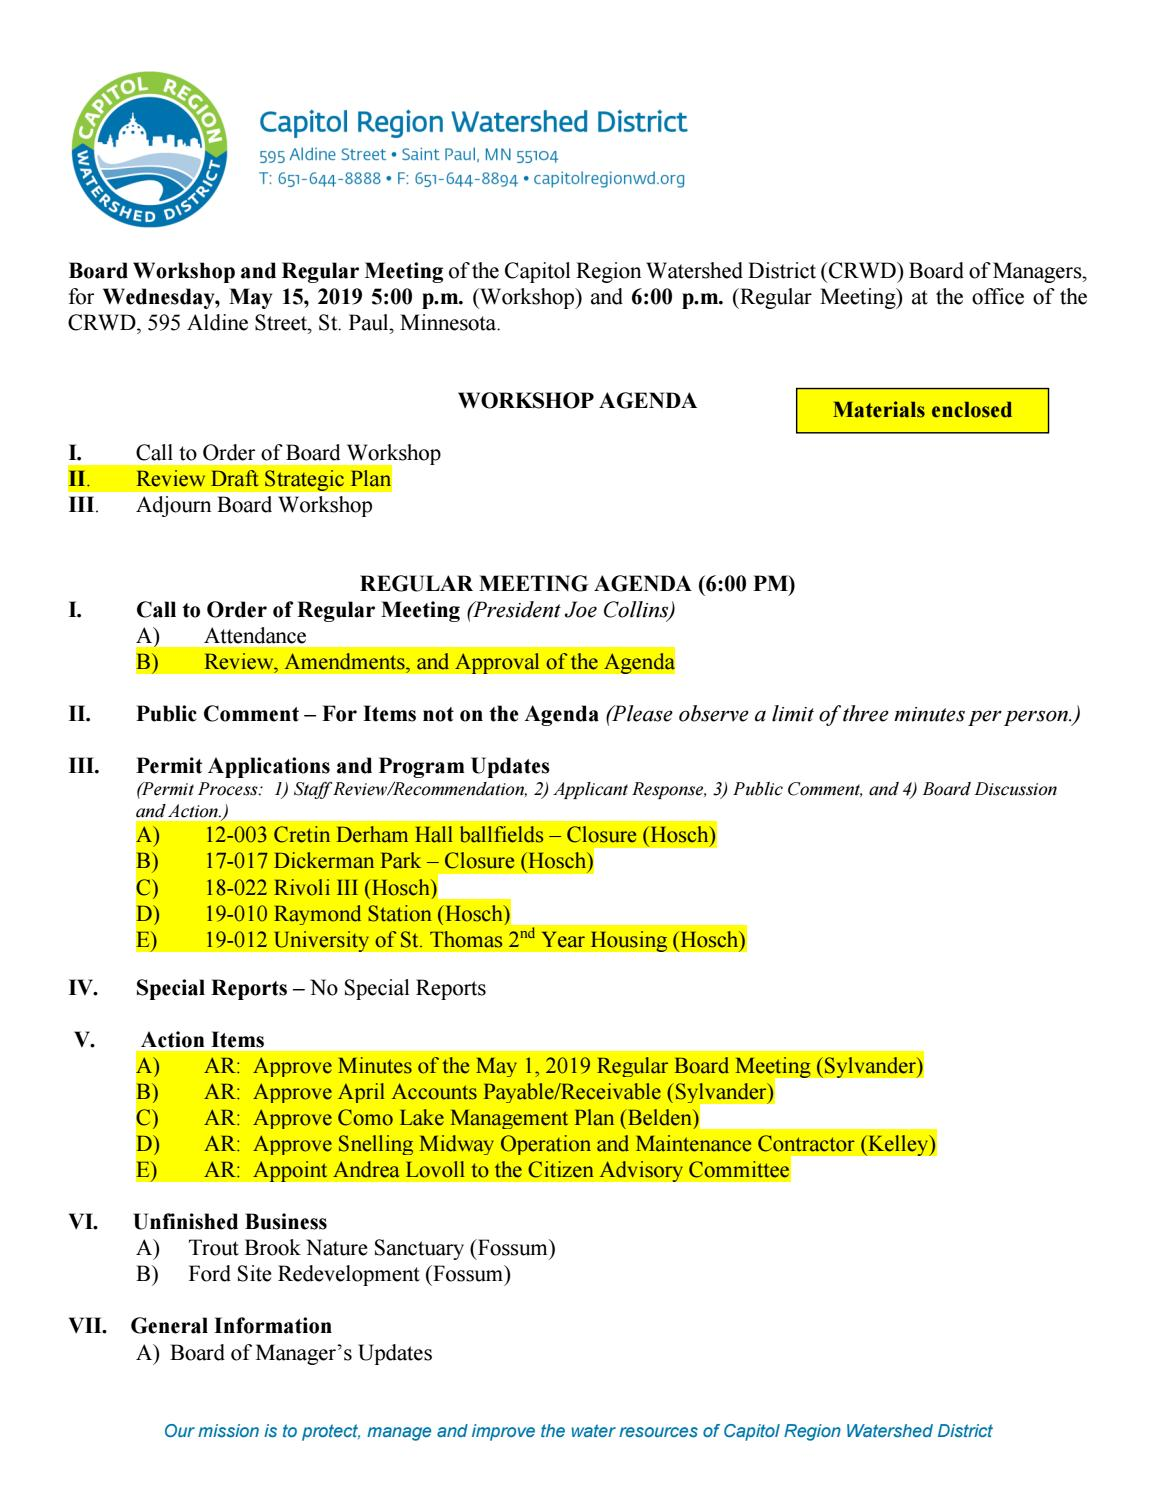 May 15, 2019 Board Packet by Capitol Region Watershed